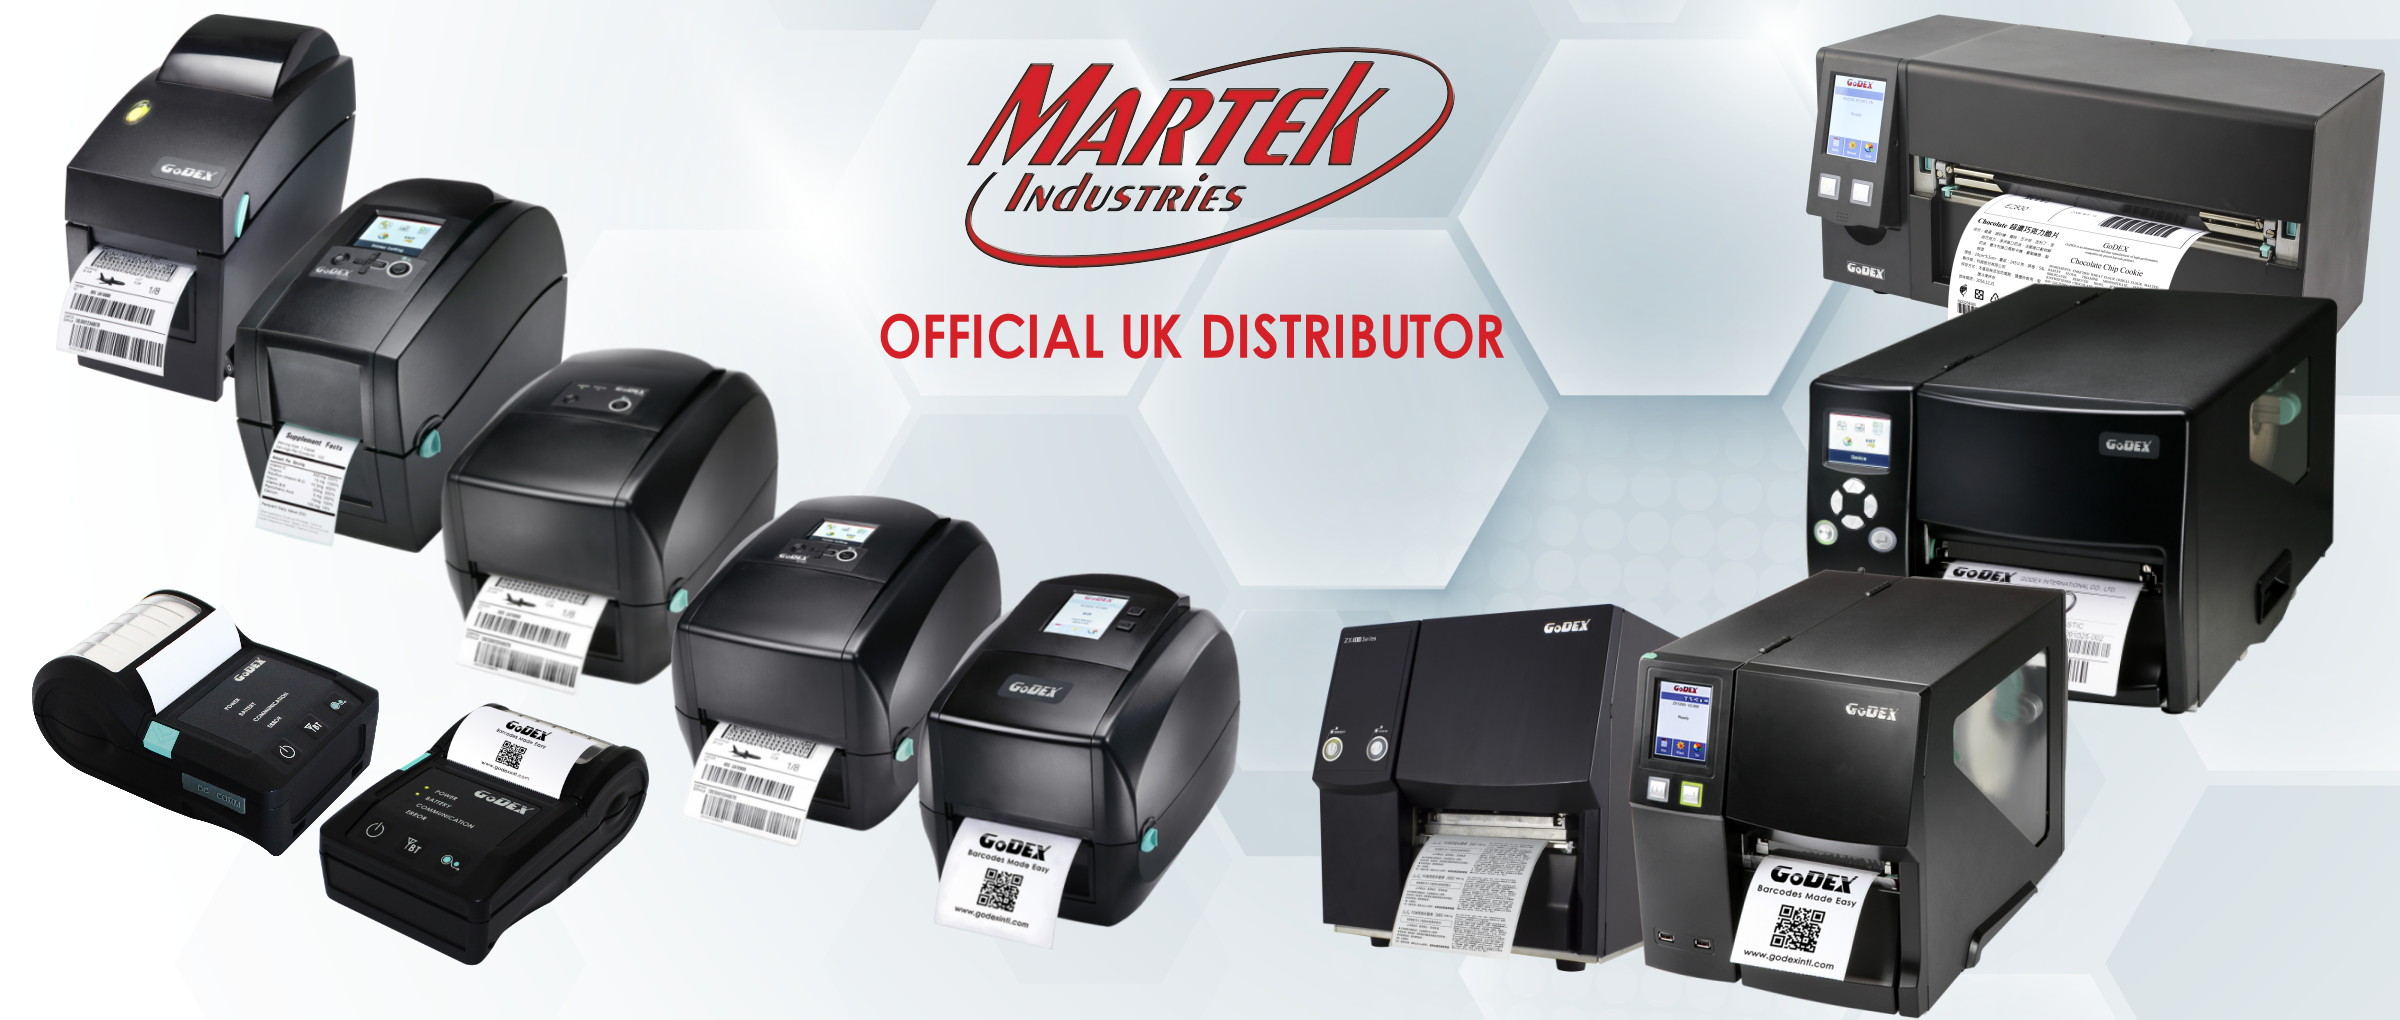 Godex thermal transfer label printers